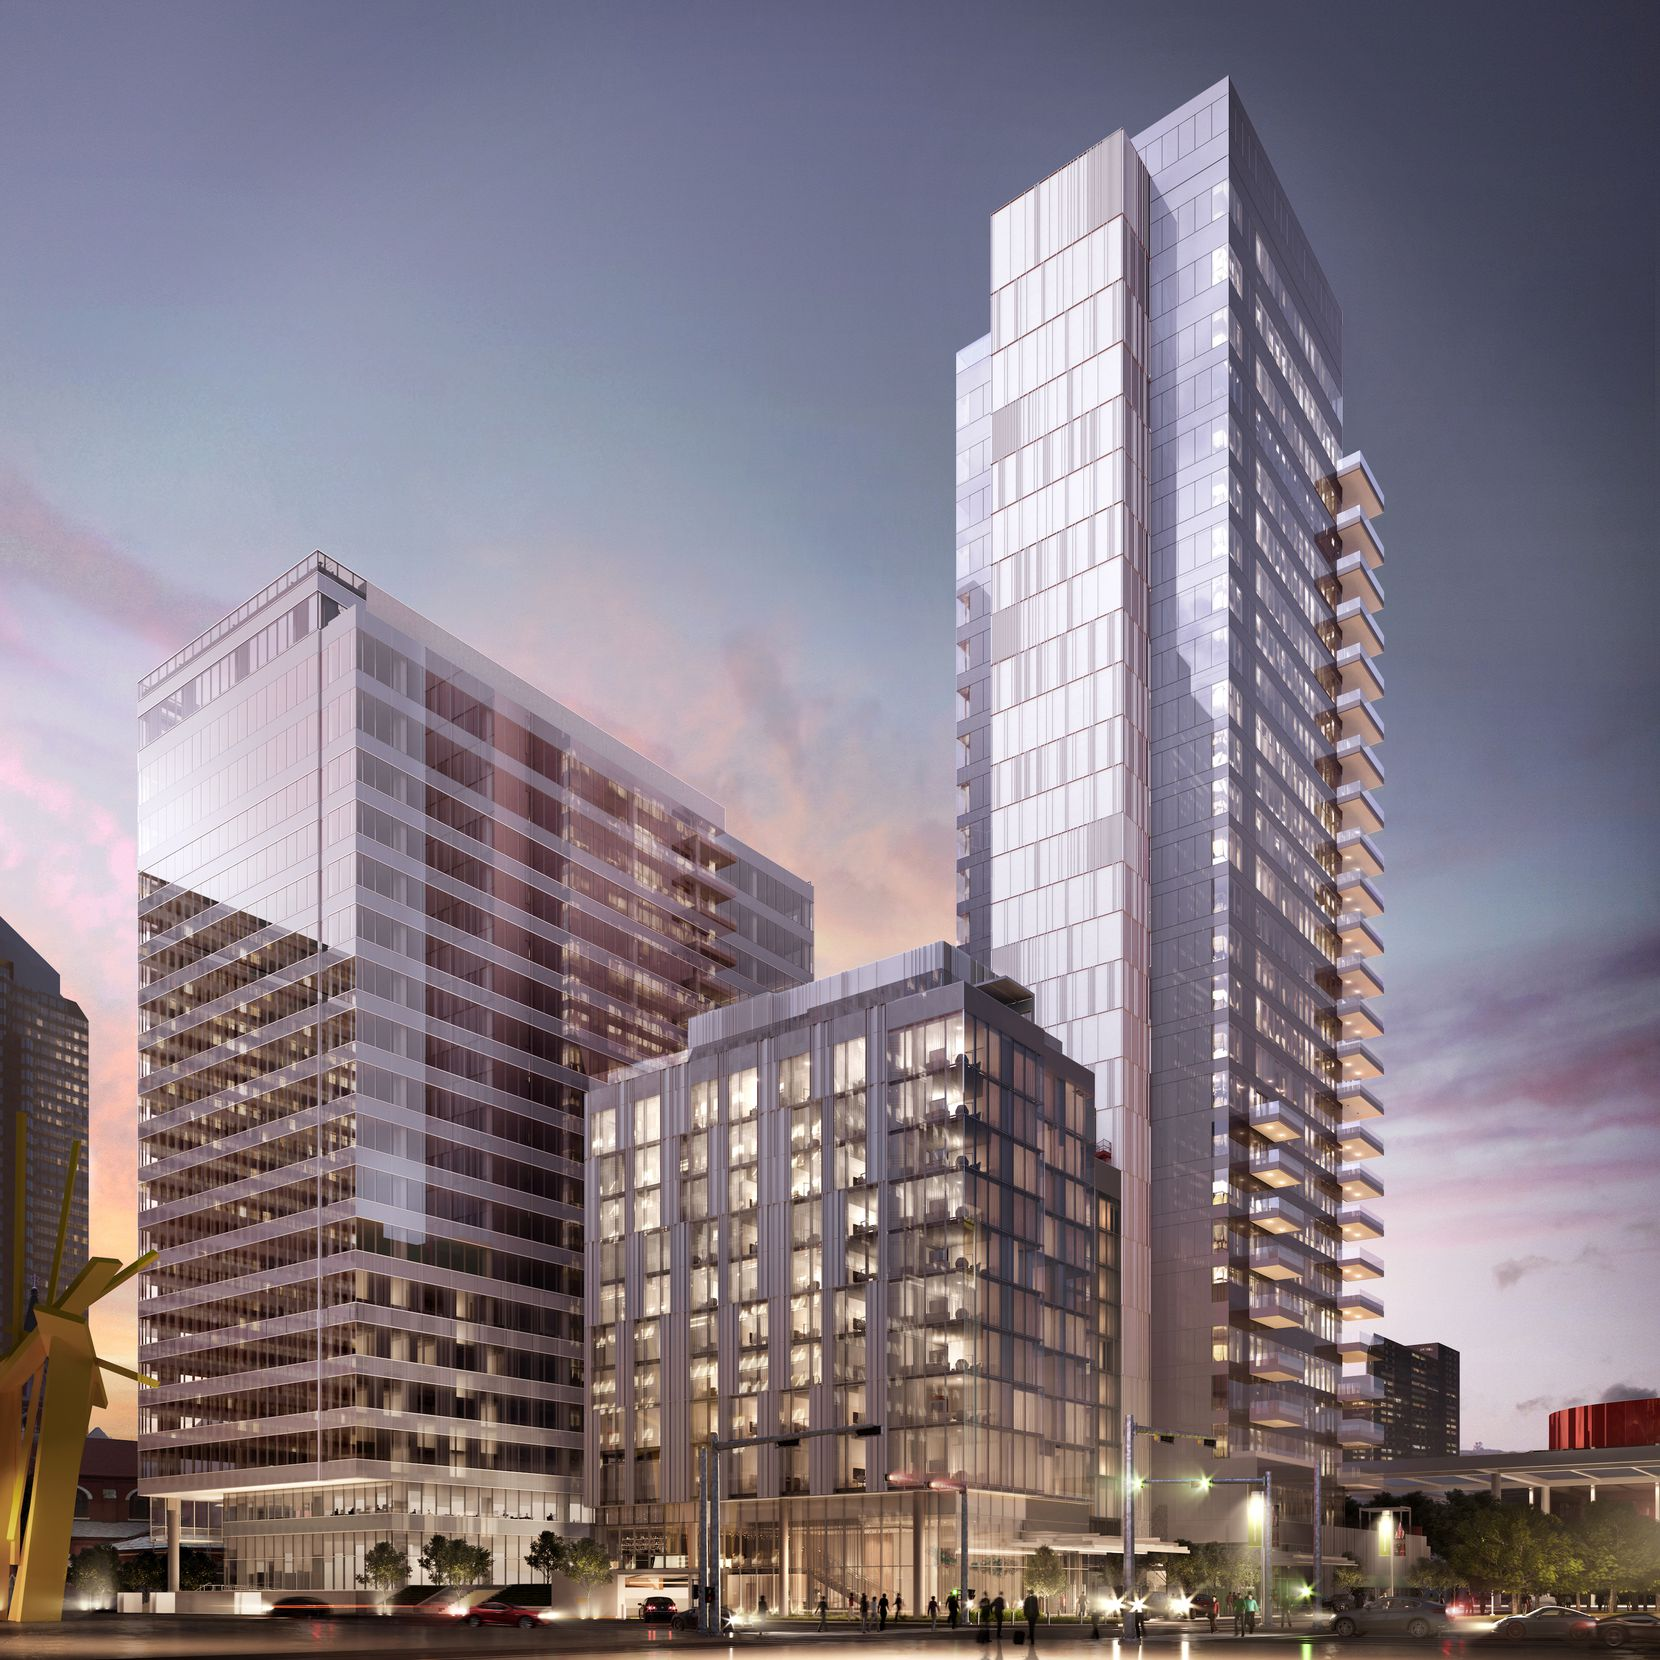 The Hall Arts Hotel and an adjoining condo tower are under construction at Ross Avenue and Leonard Street downtown.